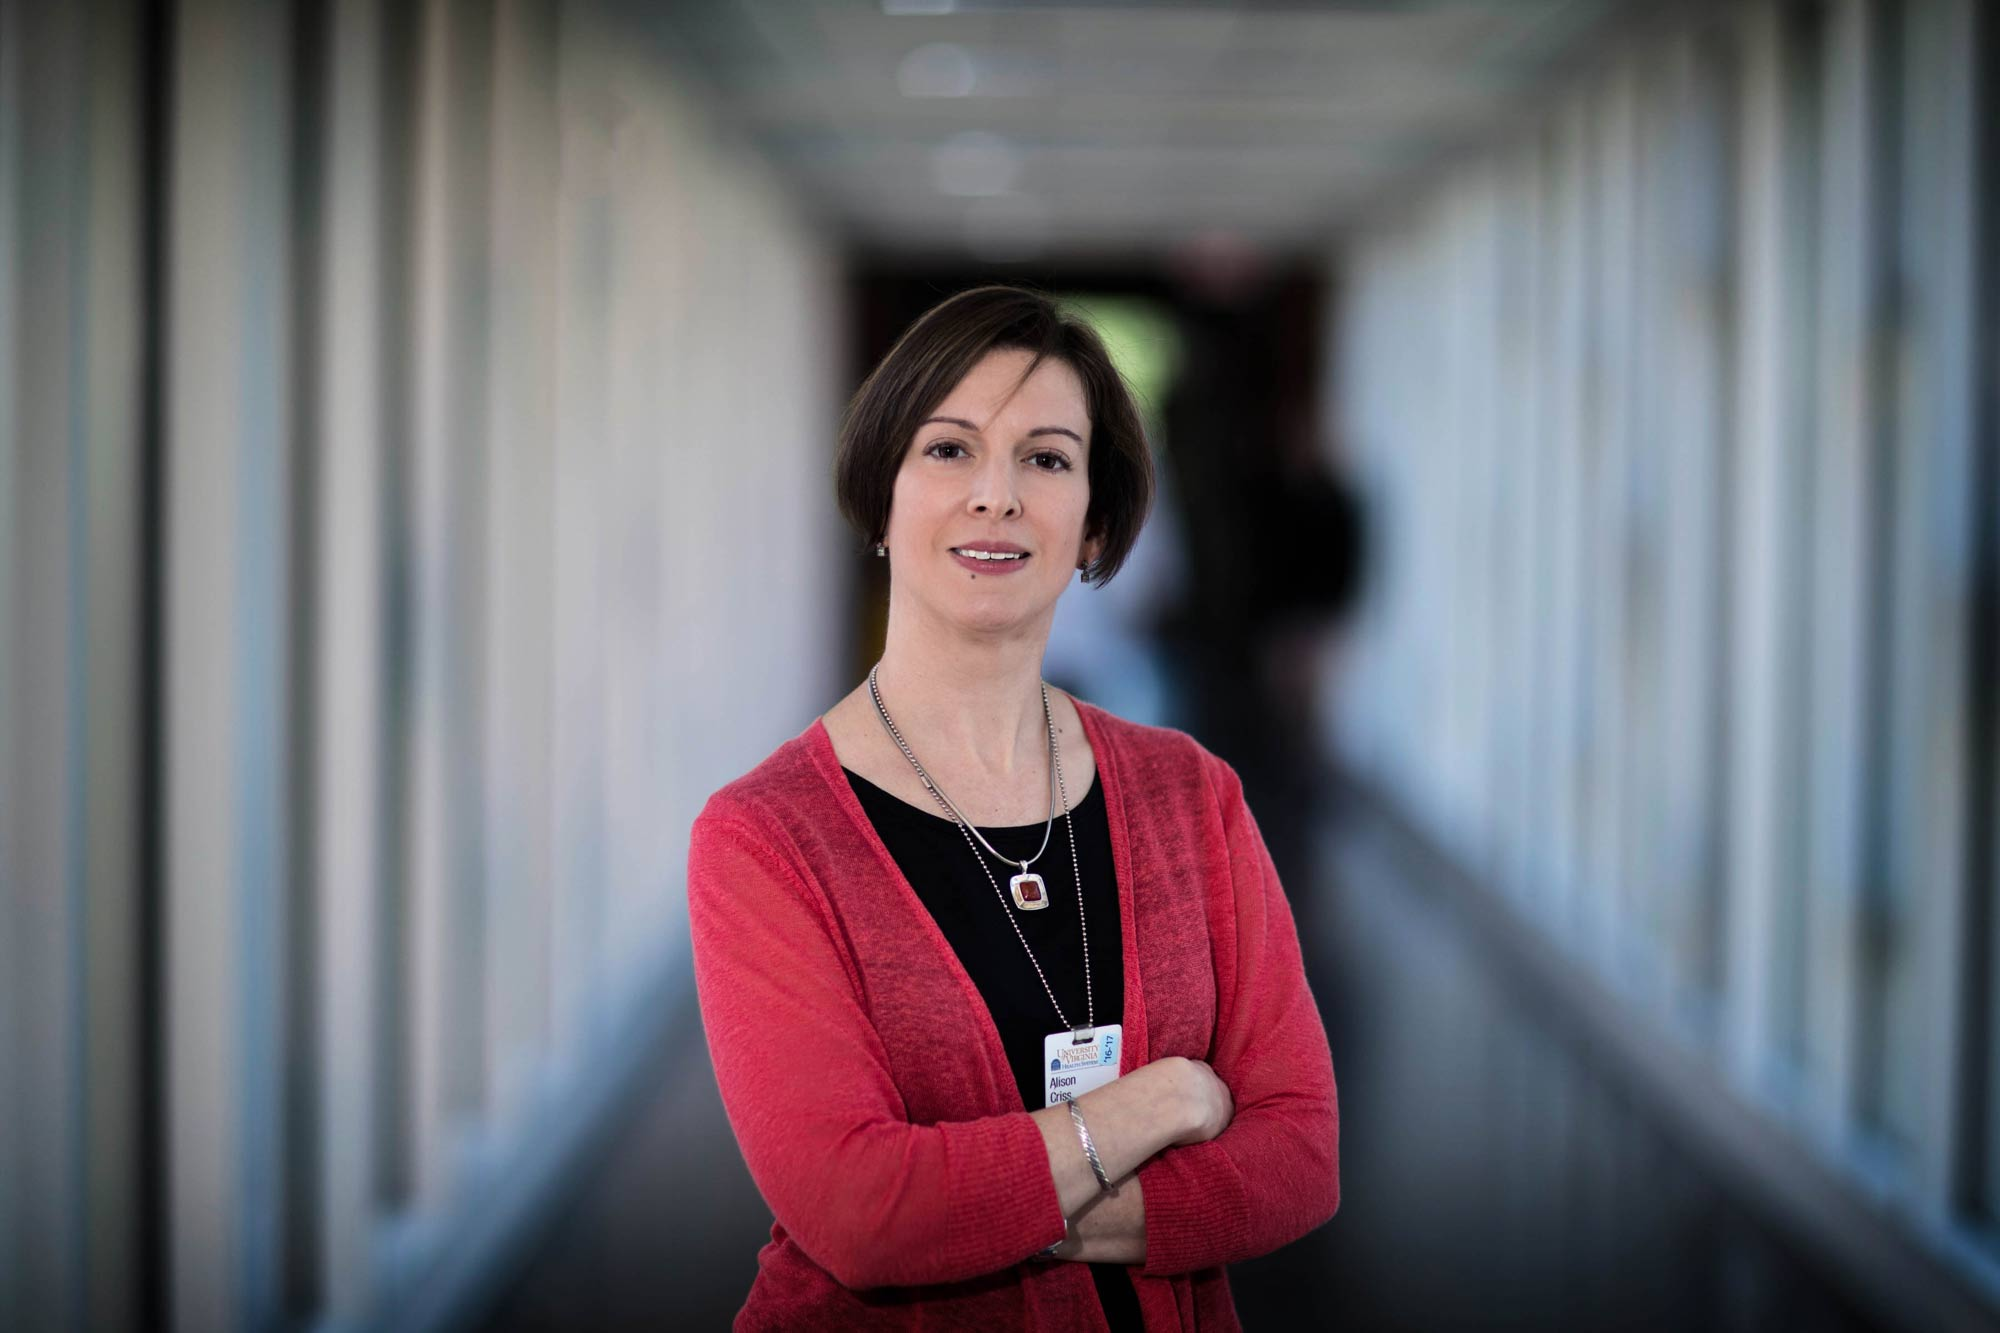 Alison Criss, an associate professor of microbiology, immunology, and cancer biology, will head the new Global Infectious Diseases Institute.